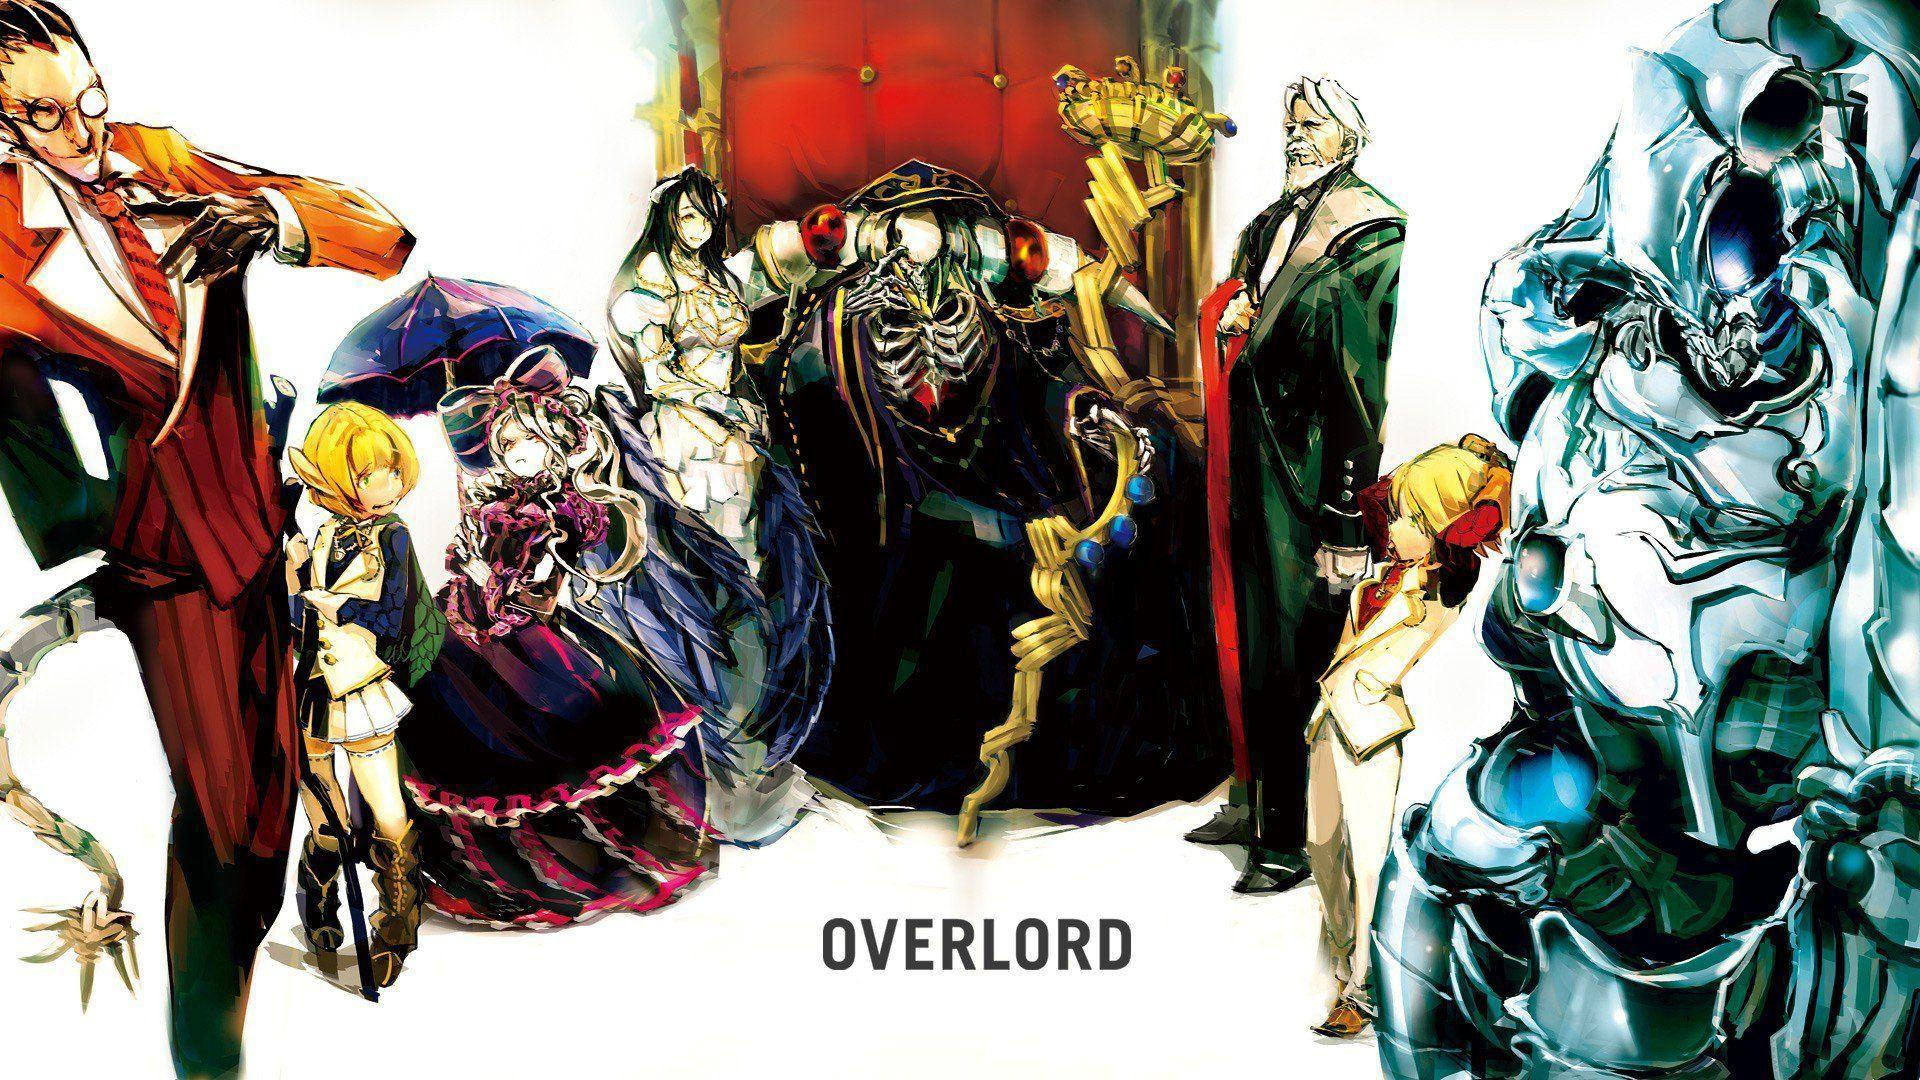 Overlord Wallpaper Images